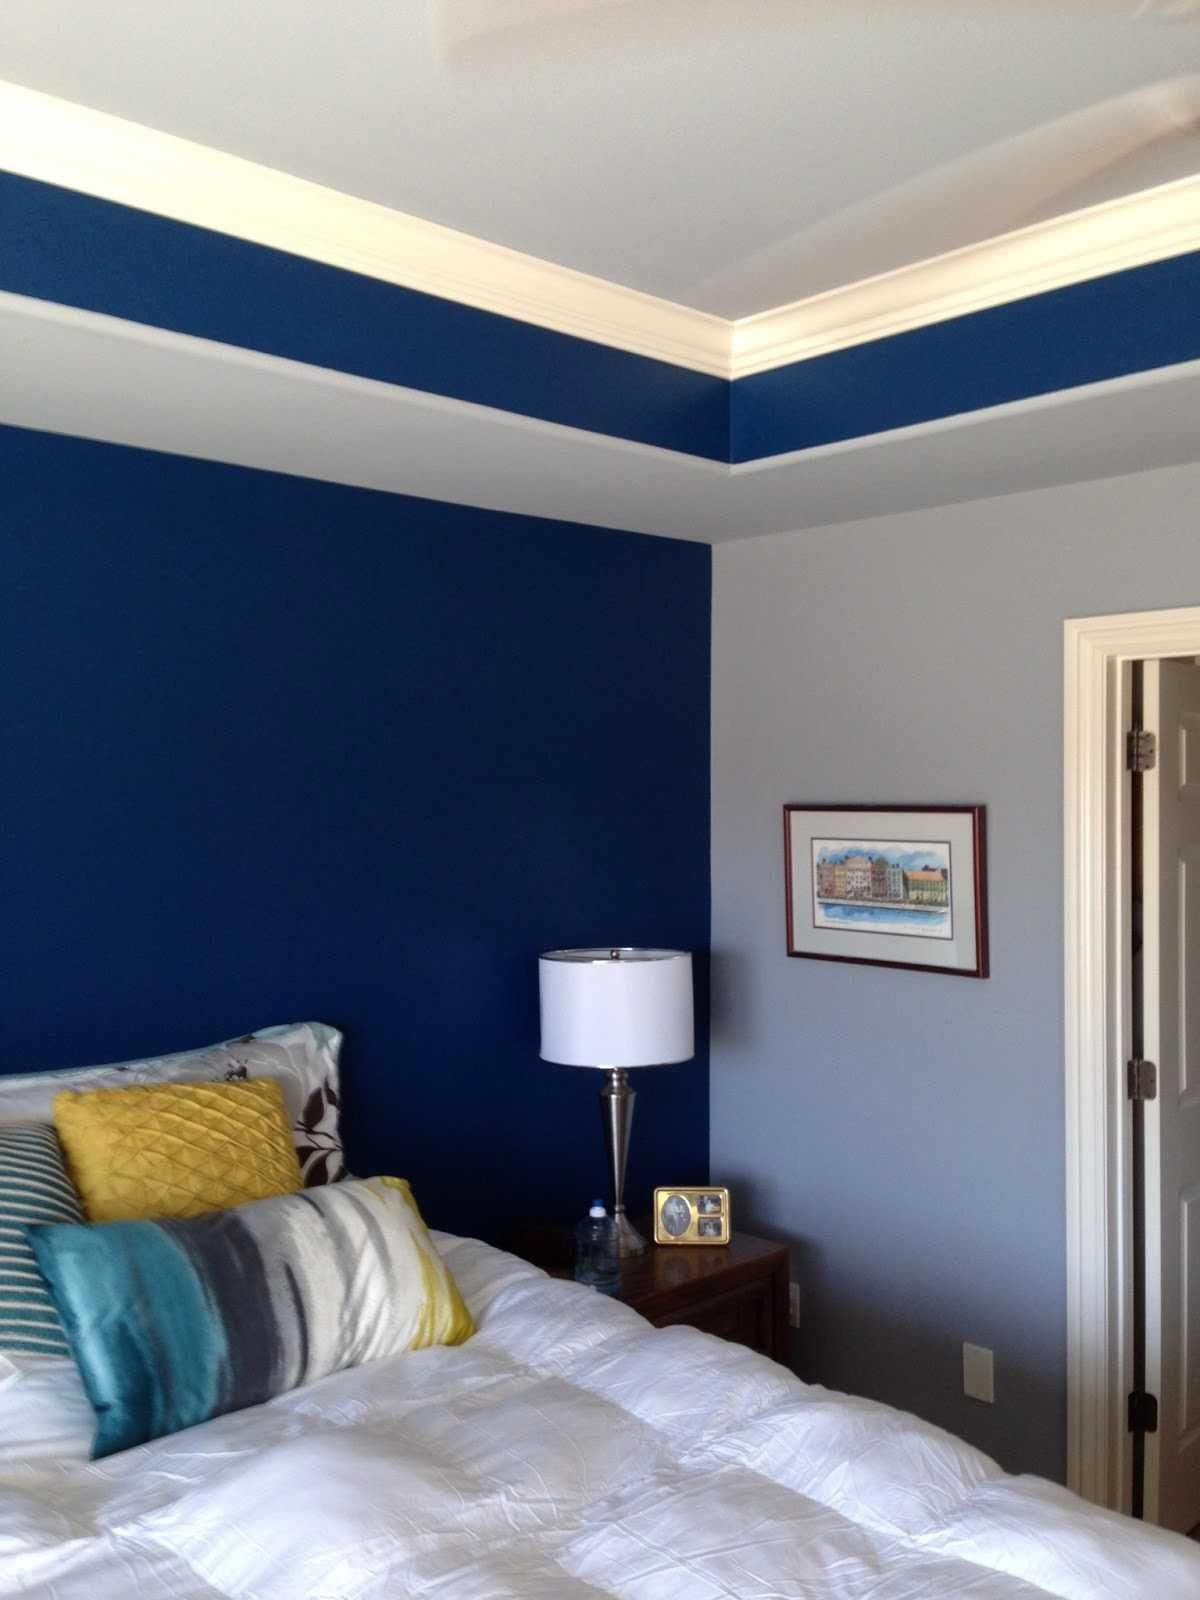 Paint Colors For Bedroom Blue - Paint Color Ideas in 10